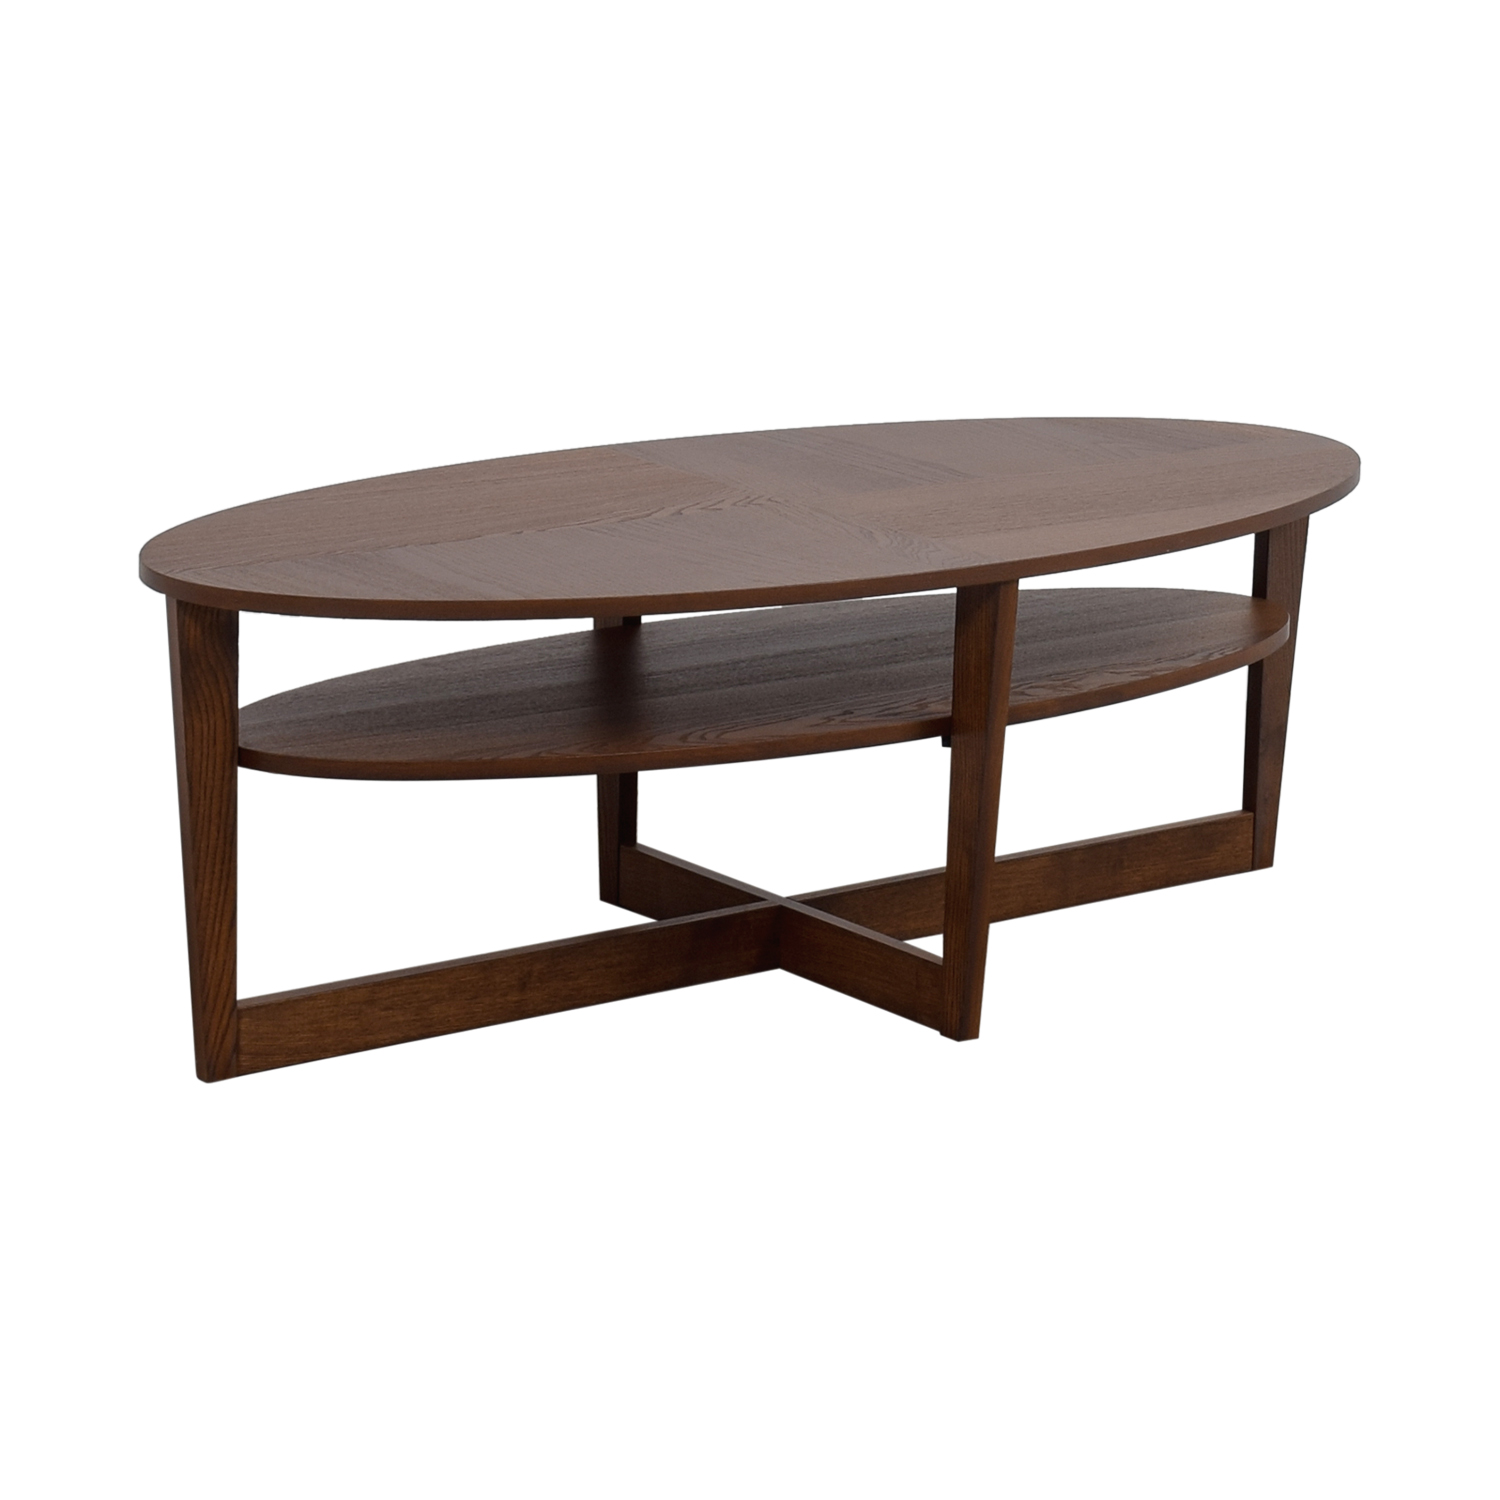 IKEA IKEA Oval Coffee Table / Tables